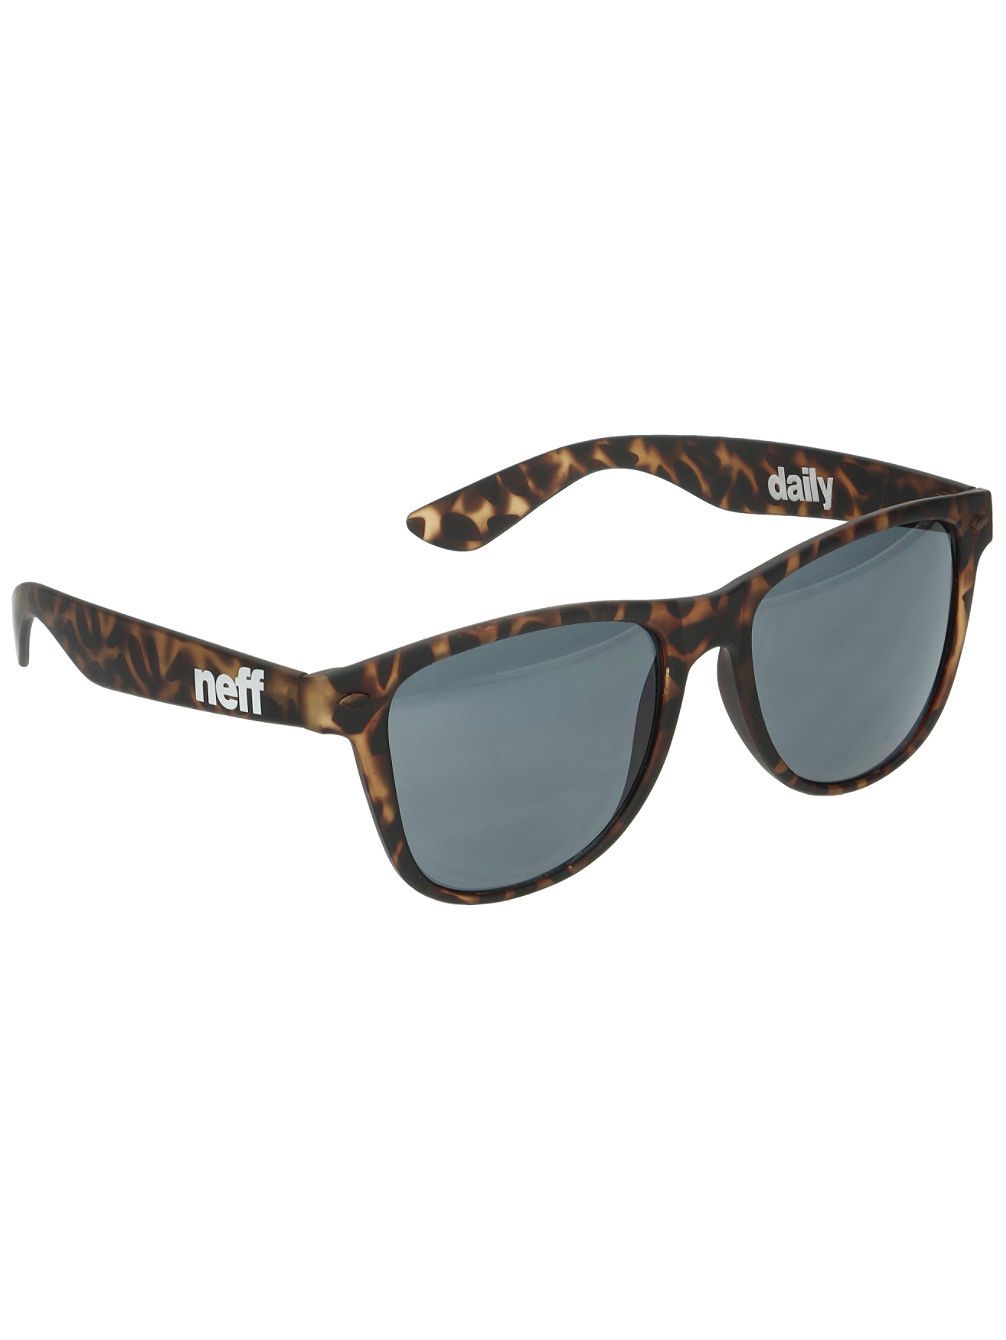 Daily Shade Tortoise Rubber Sonnenbrille